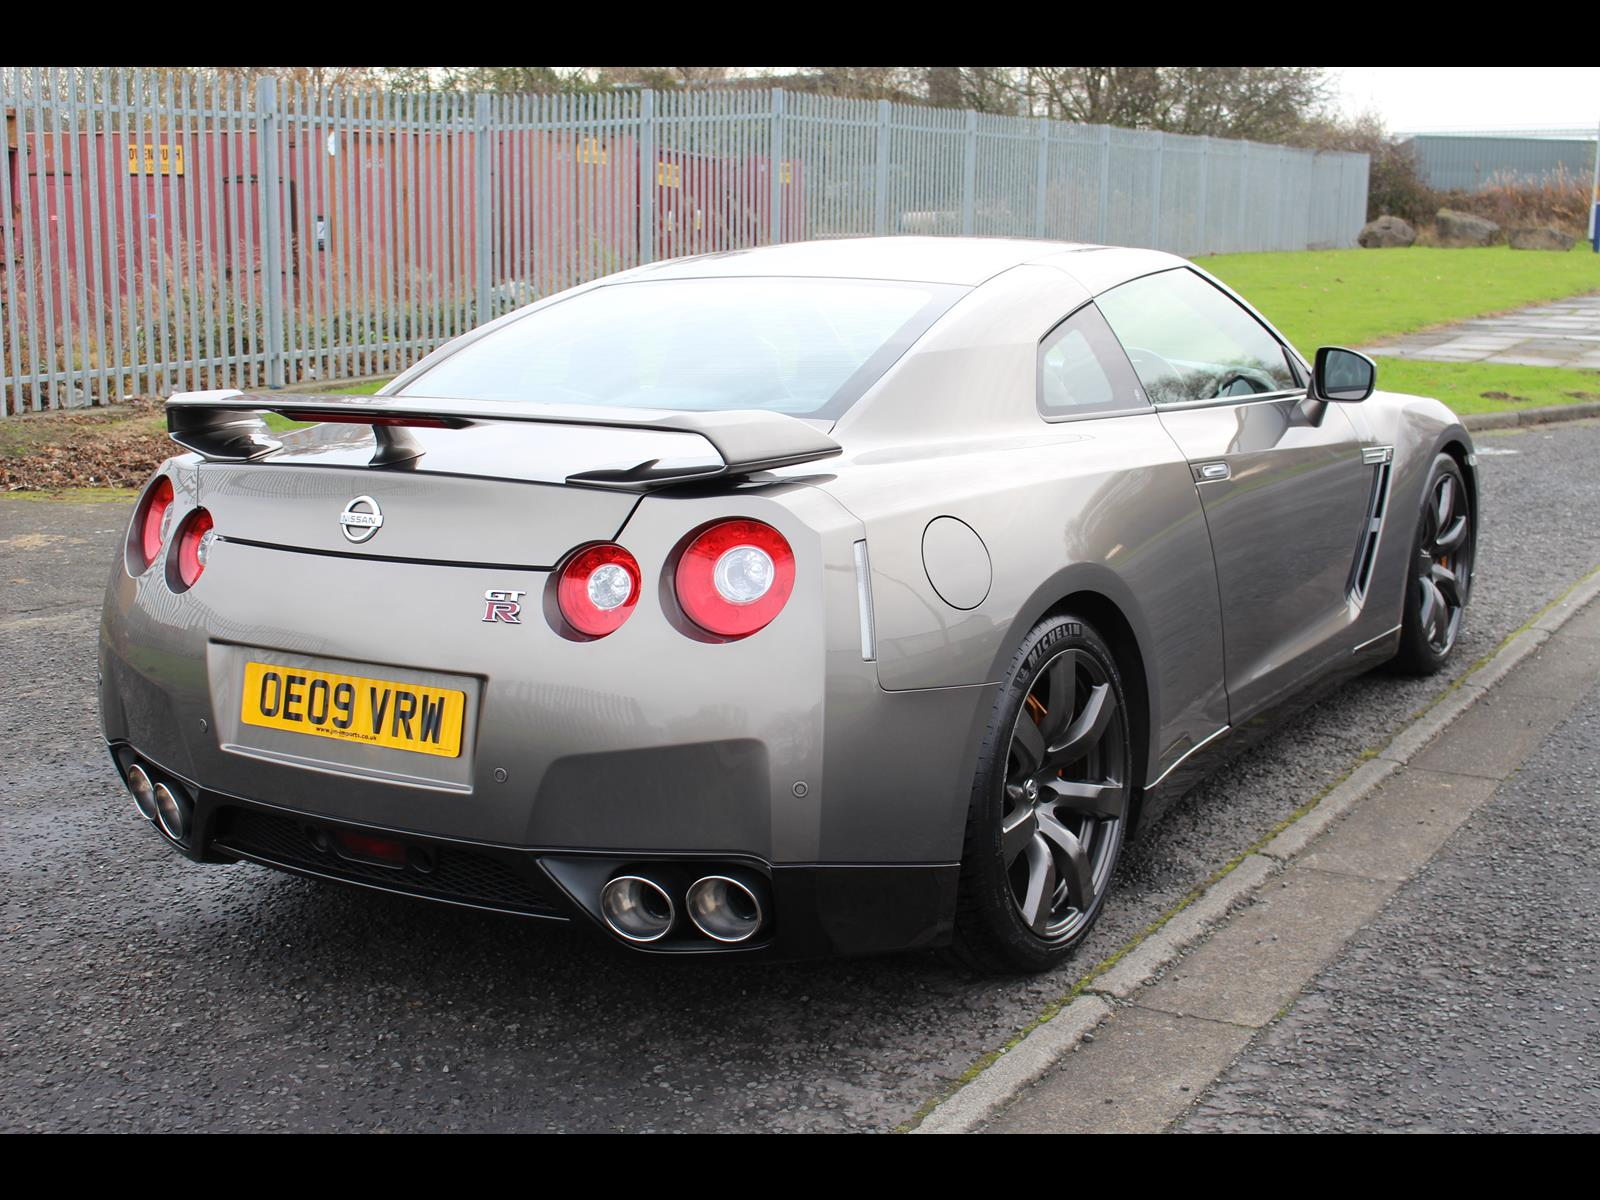 2009 Nissan Gtr For Sale >> 2009 Nissan R35 GTR Black Edition UK Car Rare Color - JM ...